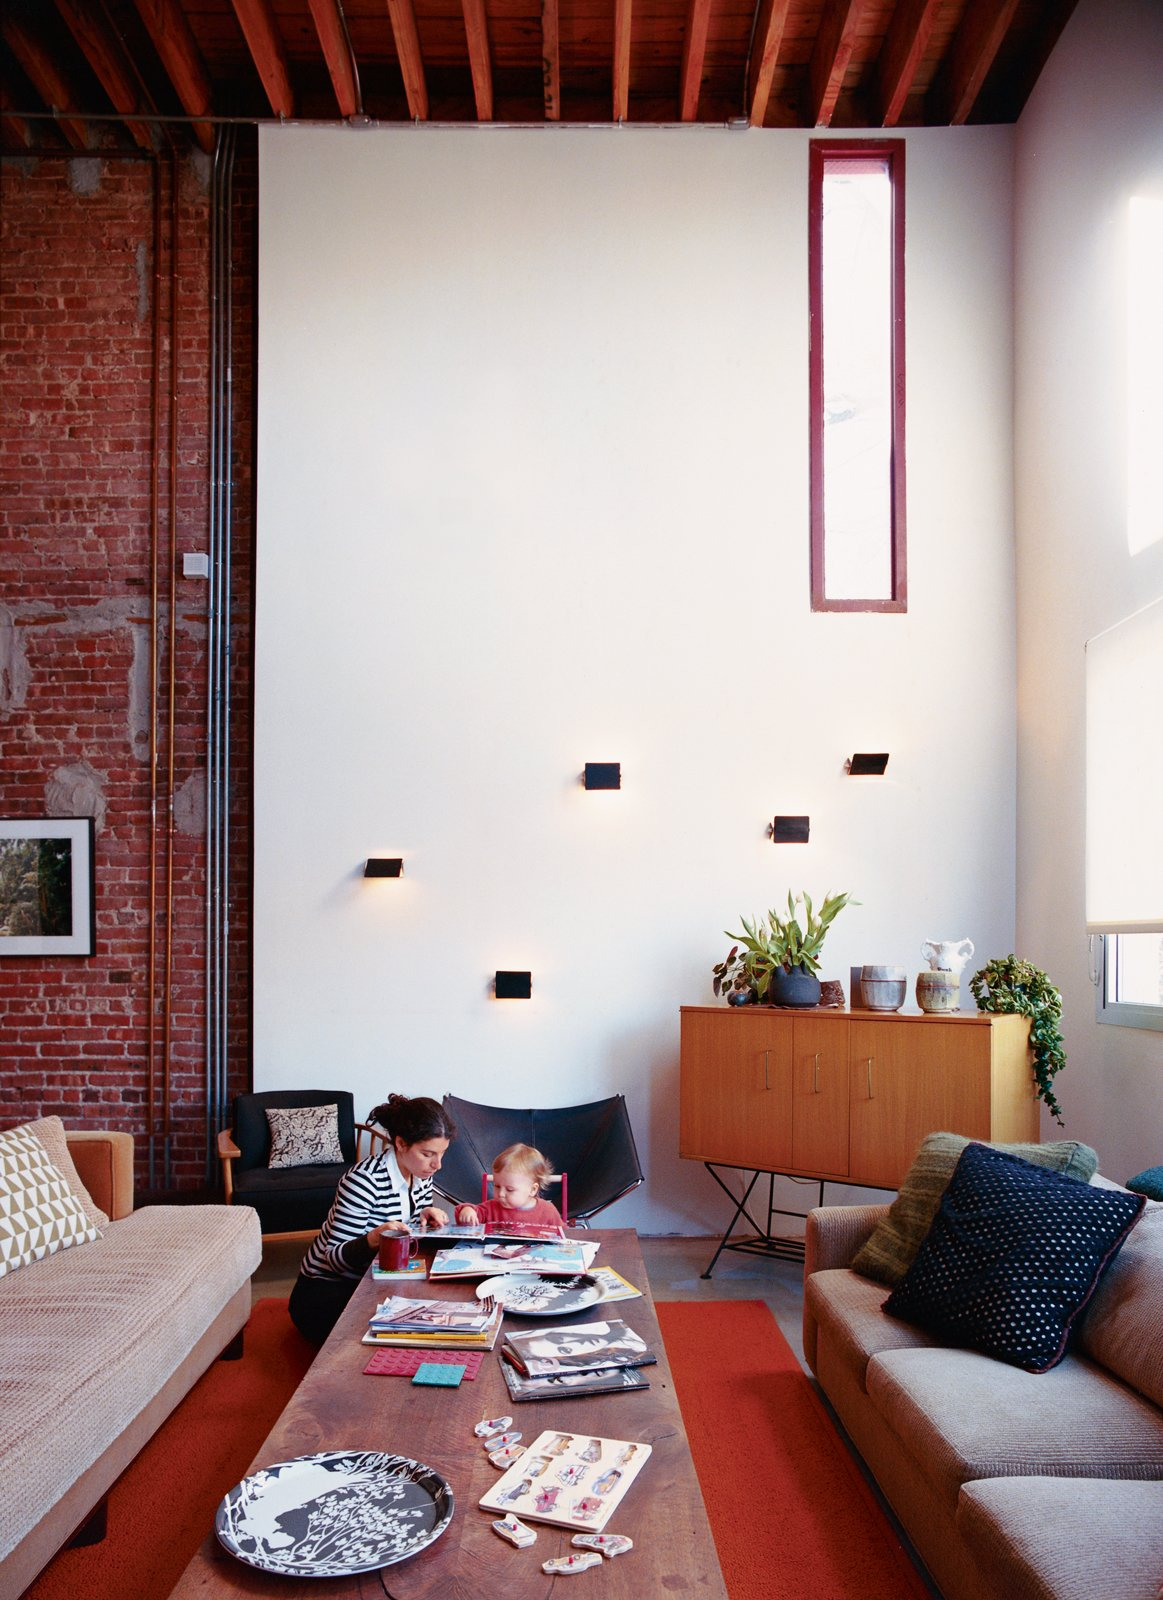 Living Room, Rug Floor, Sofa, Coffee Tables, Wall Lighting, Chair, and Storage Darcy Miro and her son, Lucien, enjoy a moment in their new double-height living room. The Charlotte Perriand wall sconces are vintage finds.  Photo 1 of 5 in A House Grows in Brooklyn